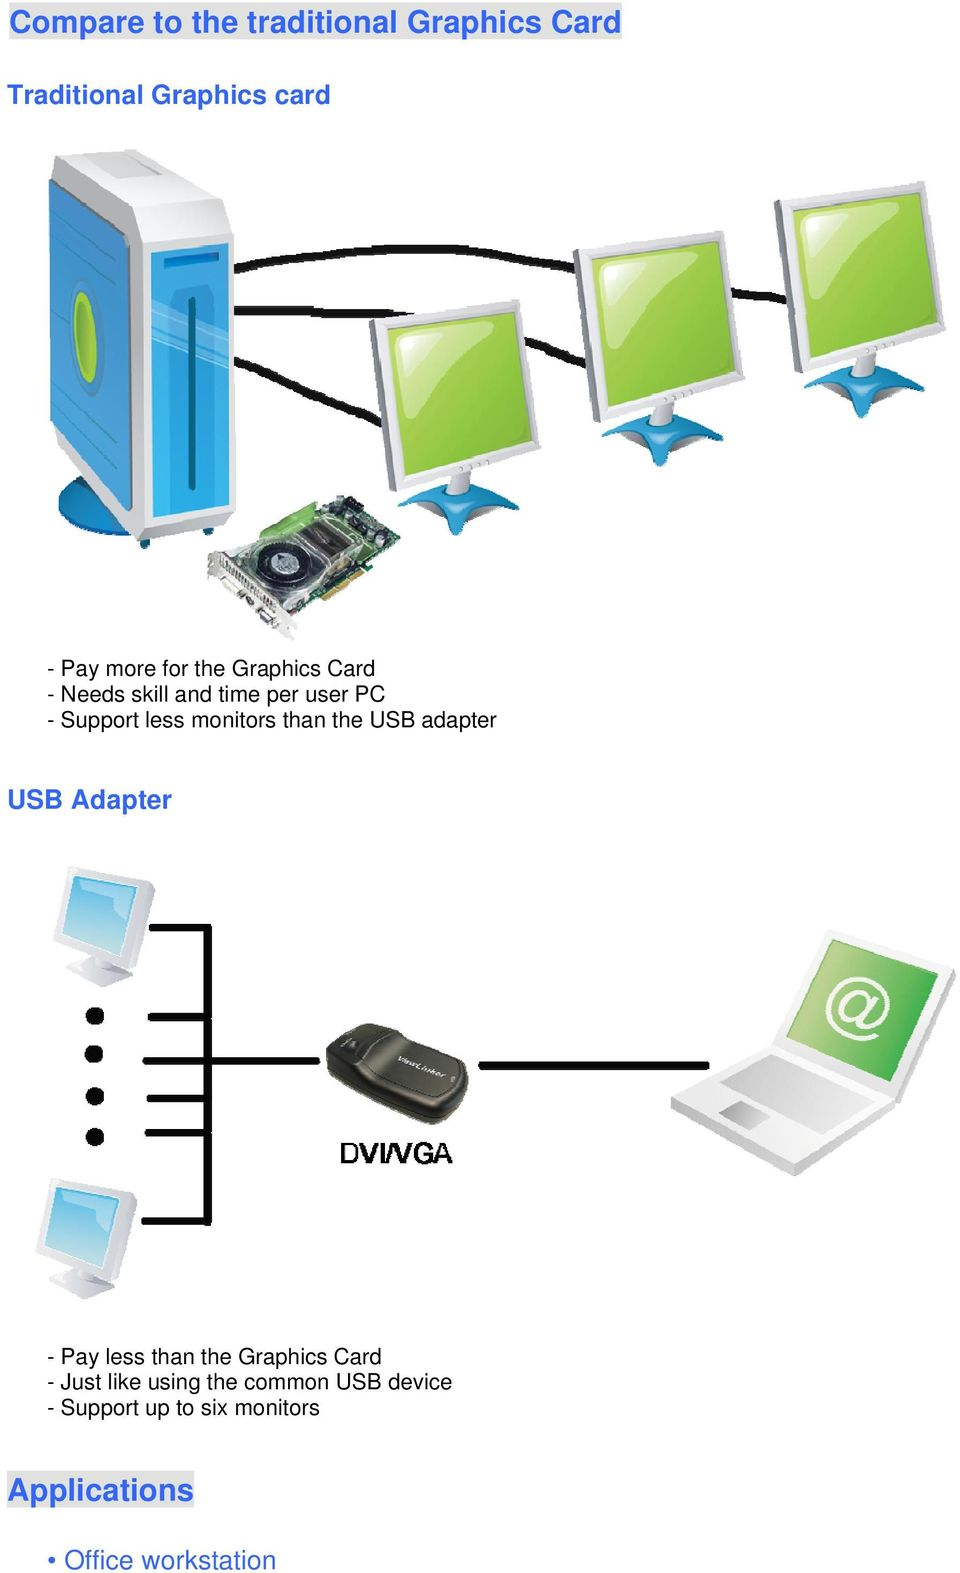 the USB adapter USB Adapter - Pay less than the Graphics Card - Just like using